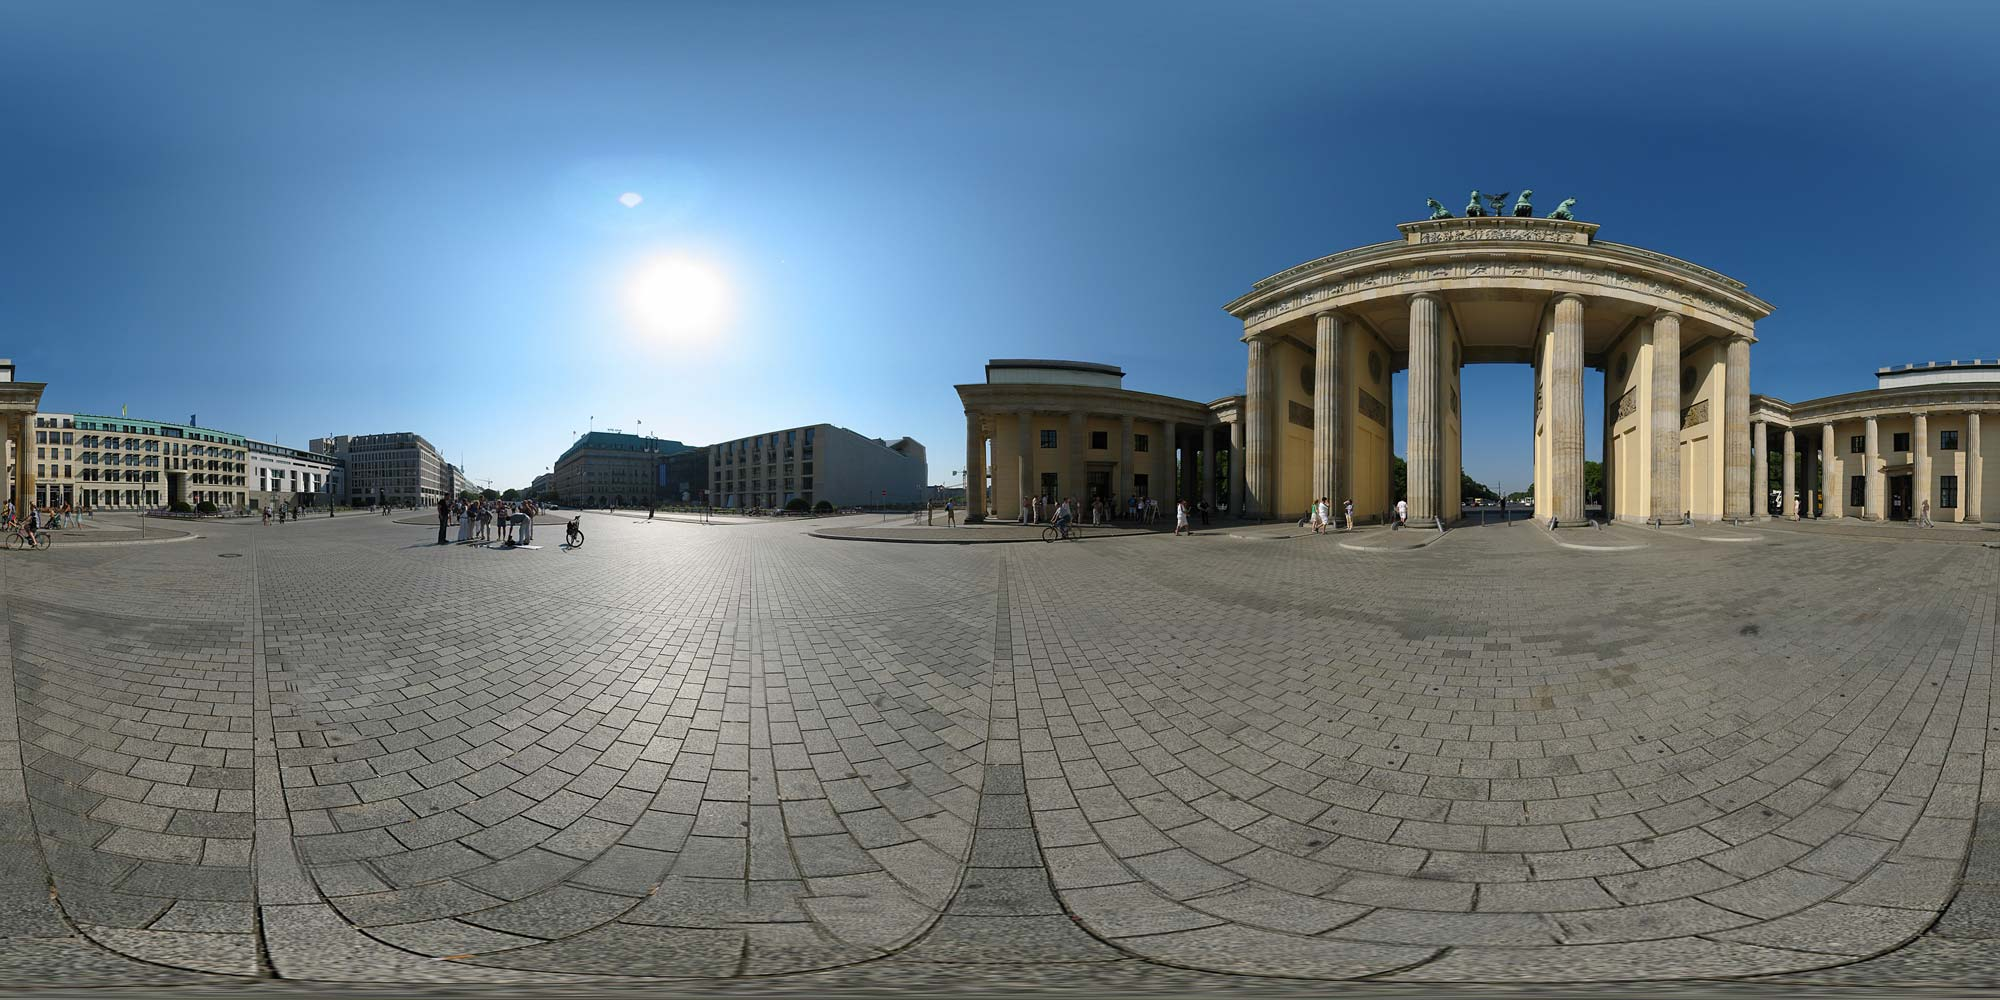 Panorama Berlin Brandenburger Tor - 2004